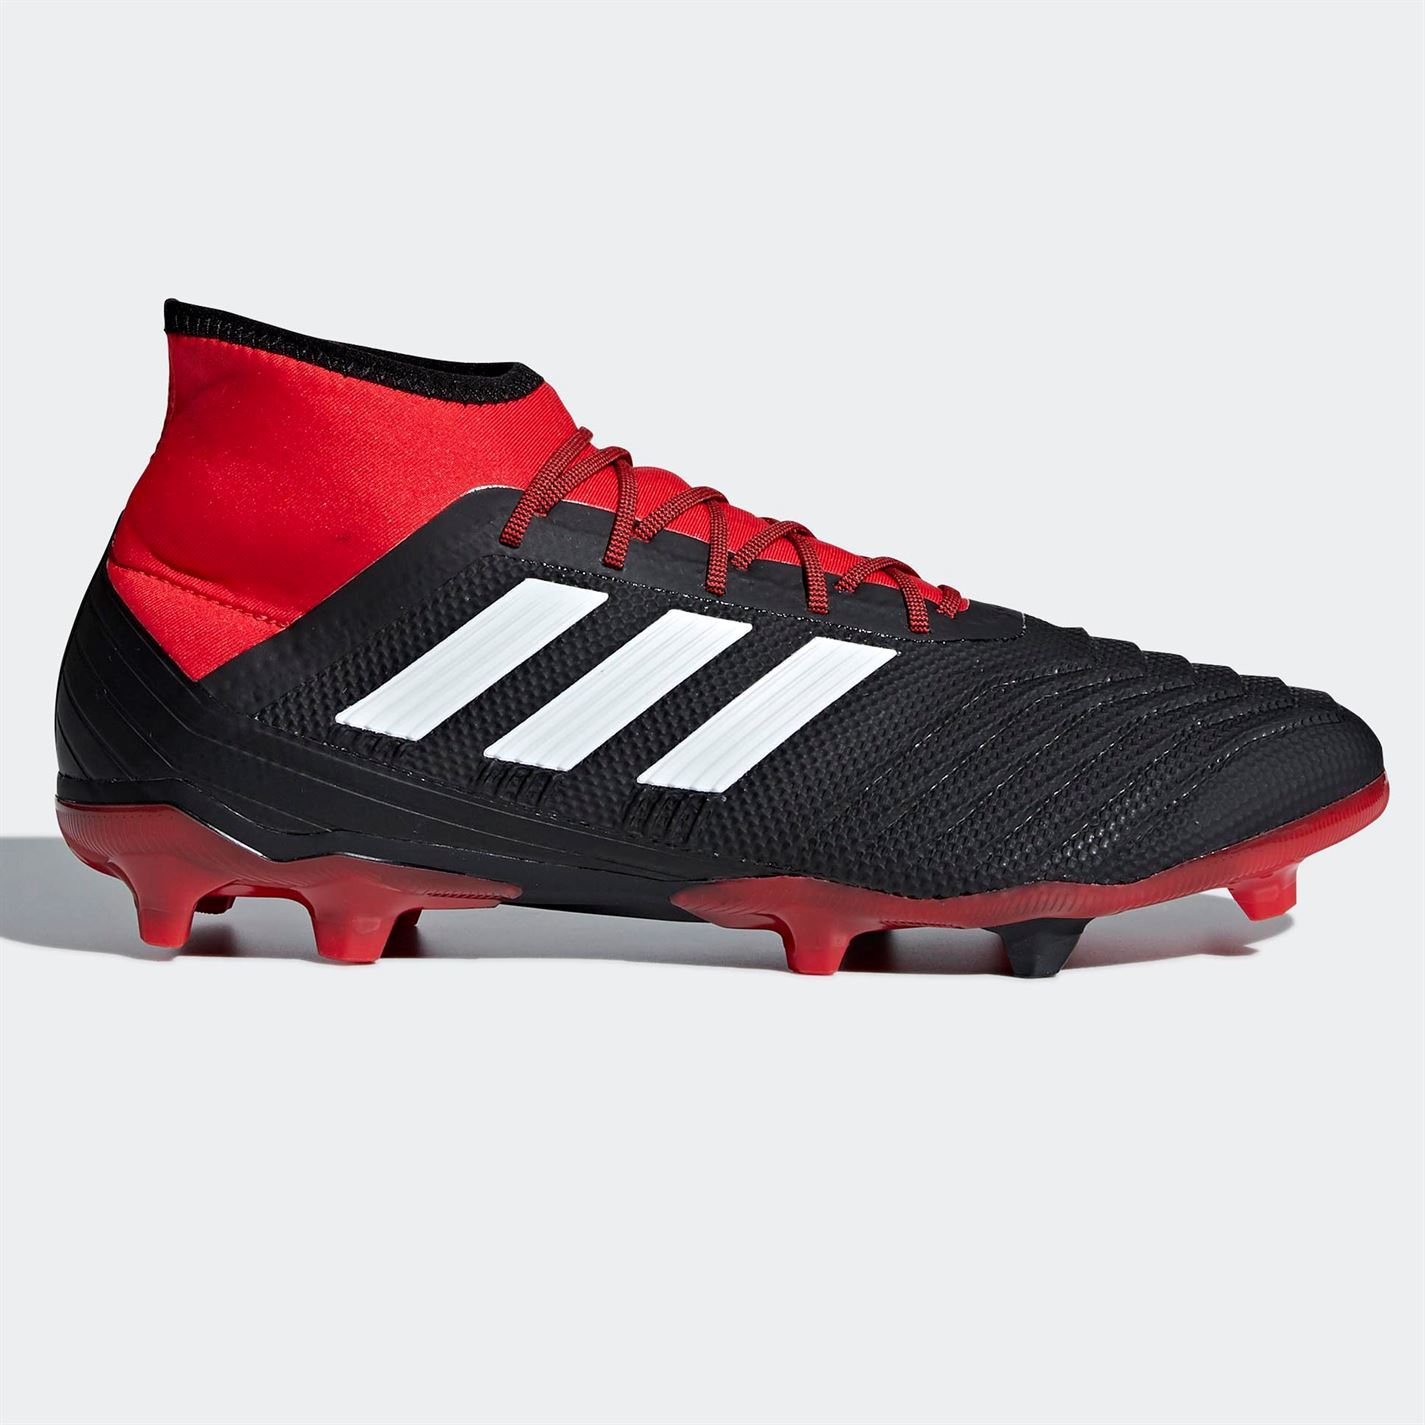 ... adidas Predator 18.2 FG Firm Ground Football Boots Mens Soccer Shoes  Cleats 3b754a5806517